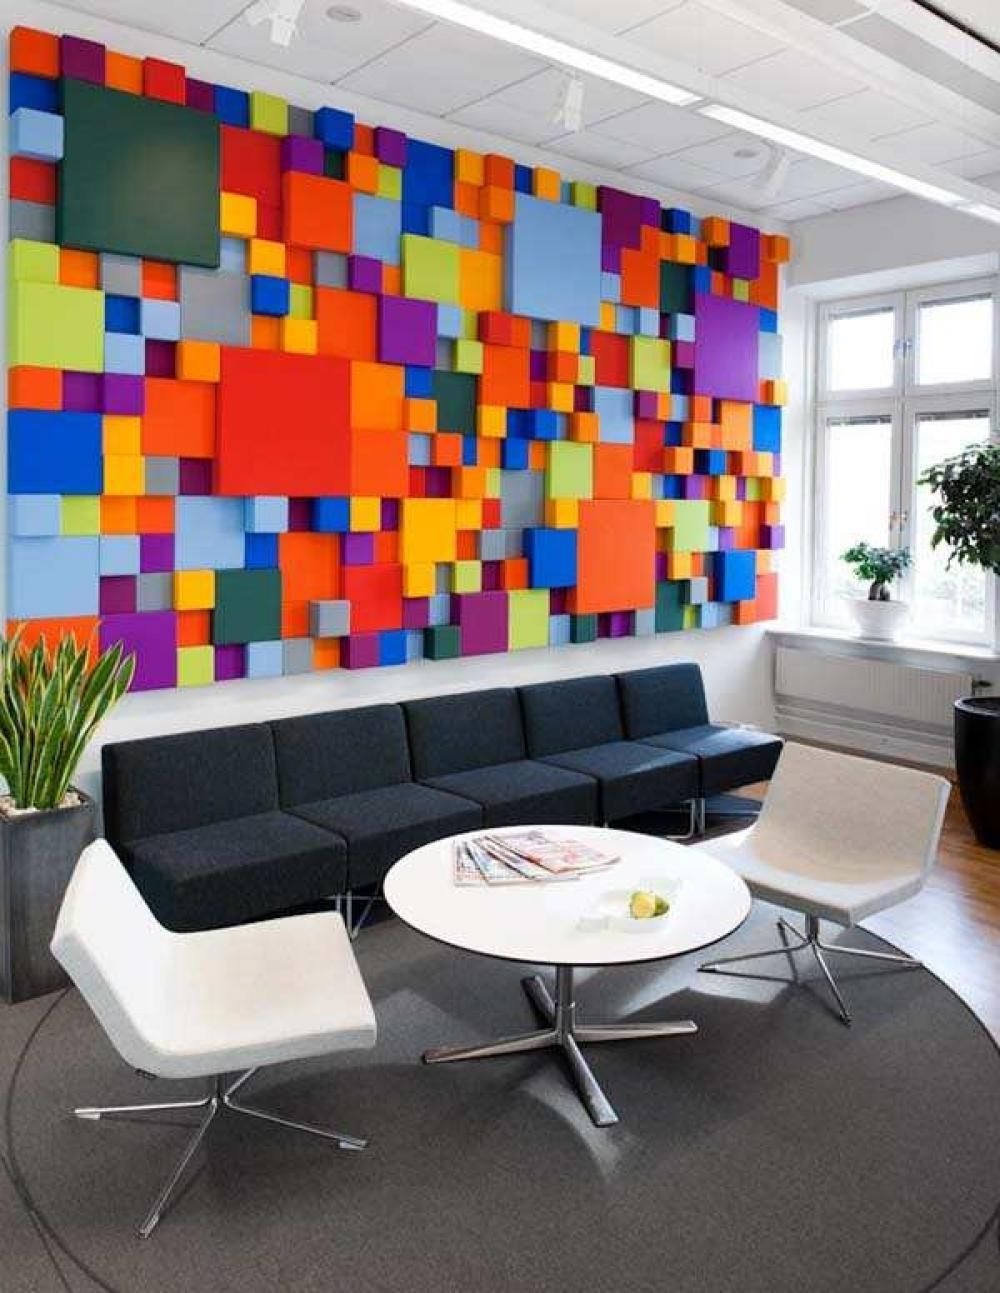 cool modern office decor. cheerful office interior desain in sweden with colorful wall decoration 24 cool modern and spacious designs concept design decor f